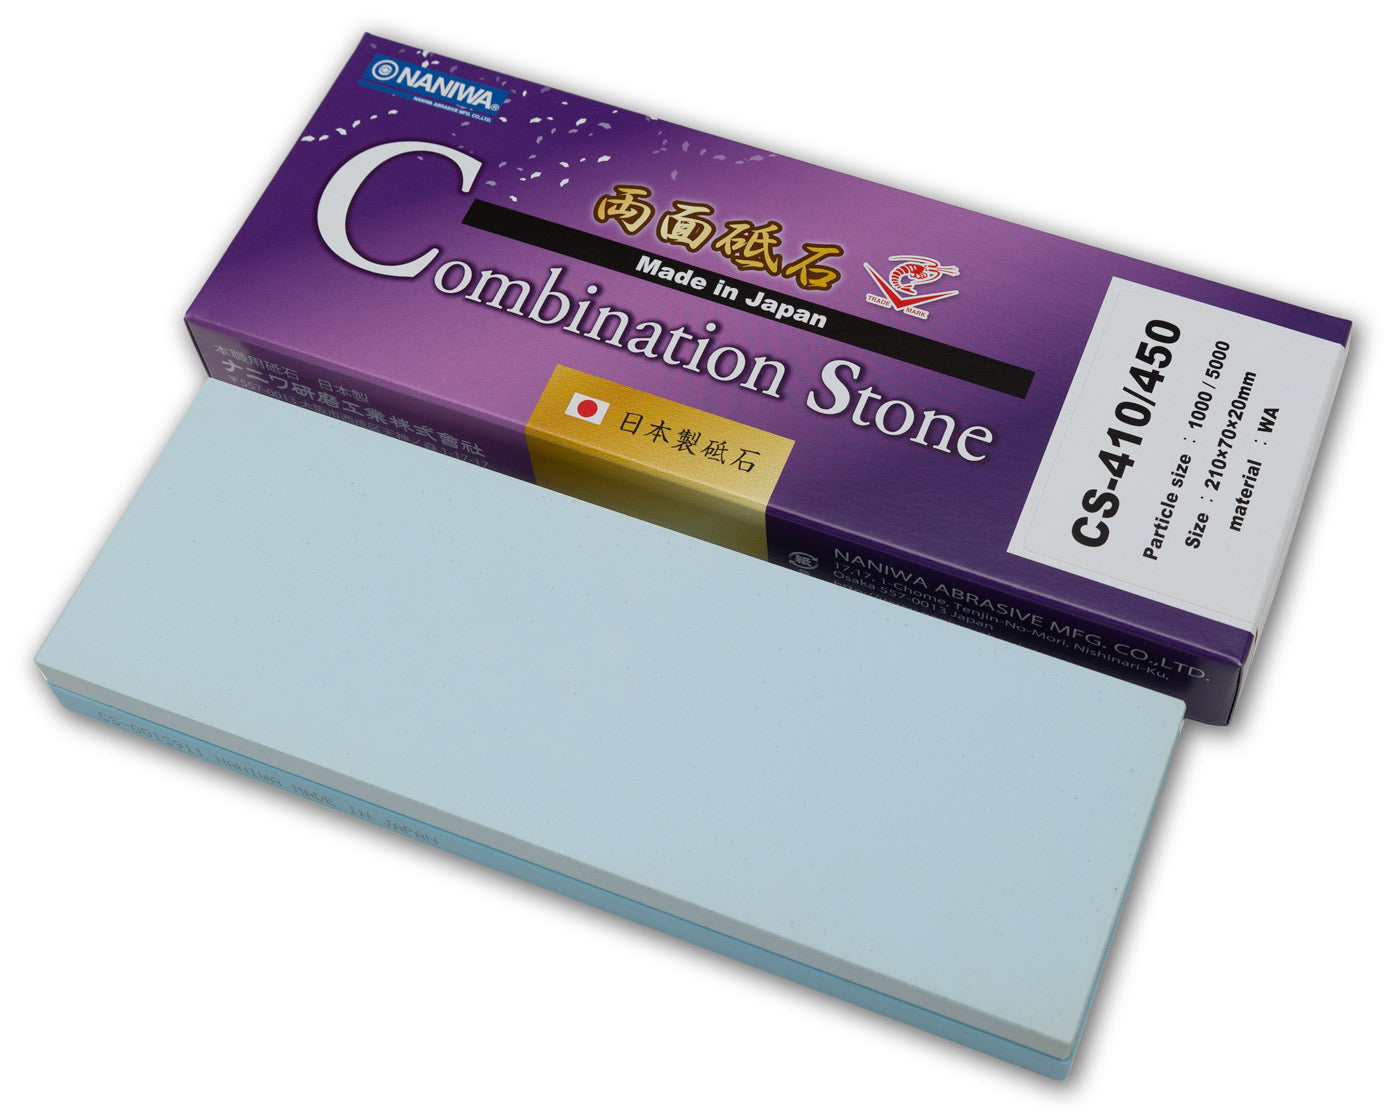 Naniwa Super-Stone Japanese Whetstone Sharpening Stone, Dual-Sided Combo, 1000/5000 grit